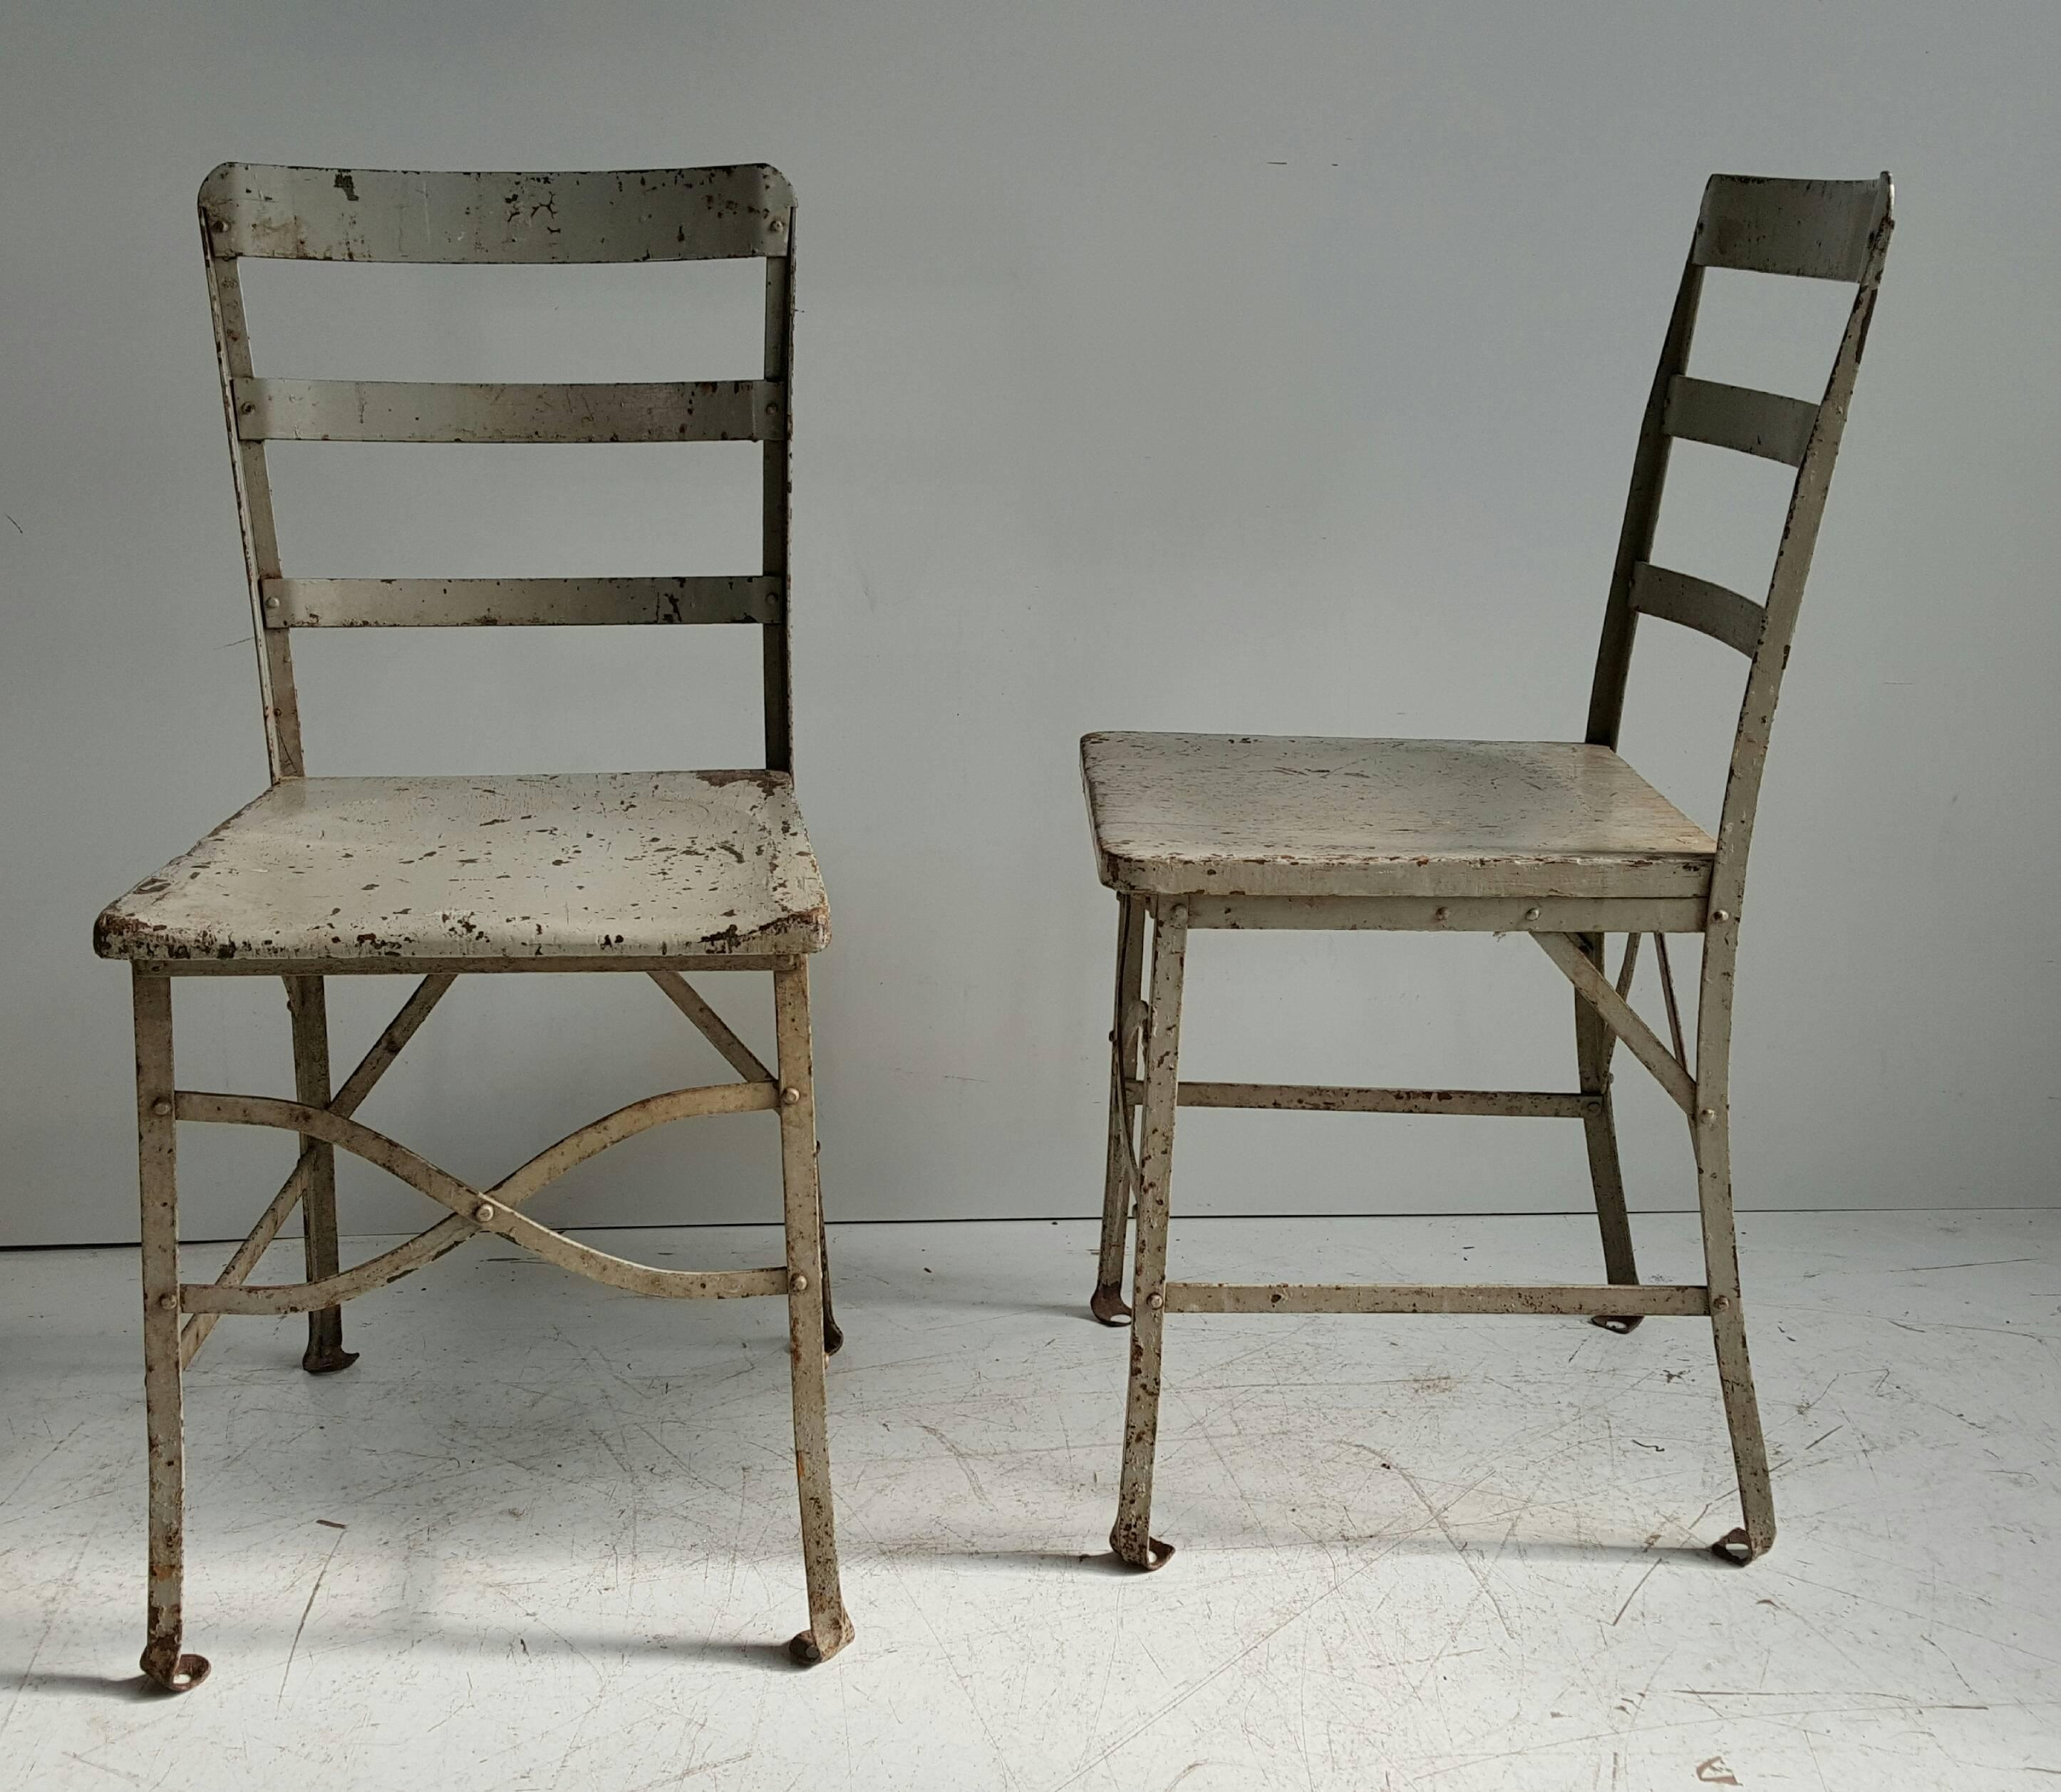 Charmant Industrial American Modernist Old Factory Grey Painted Toledo Industrial  Chairs   A Pair For Sale